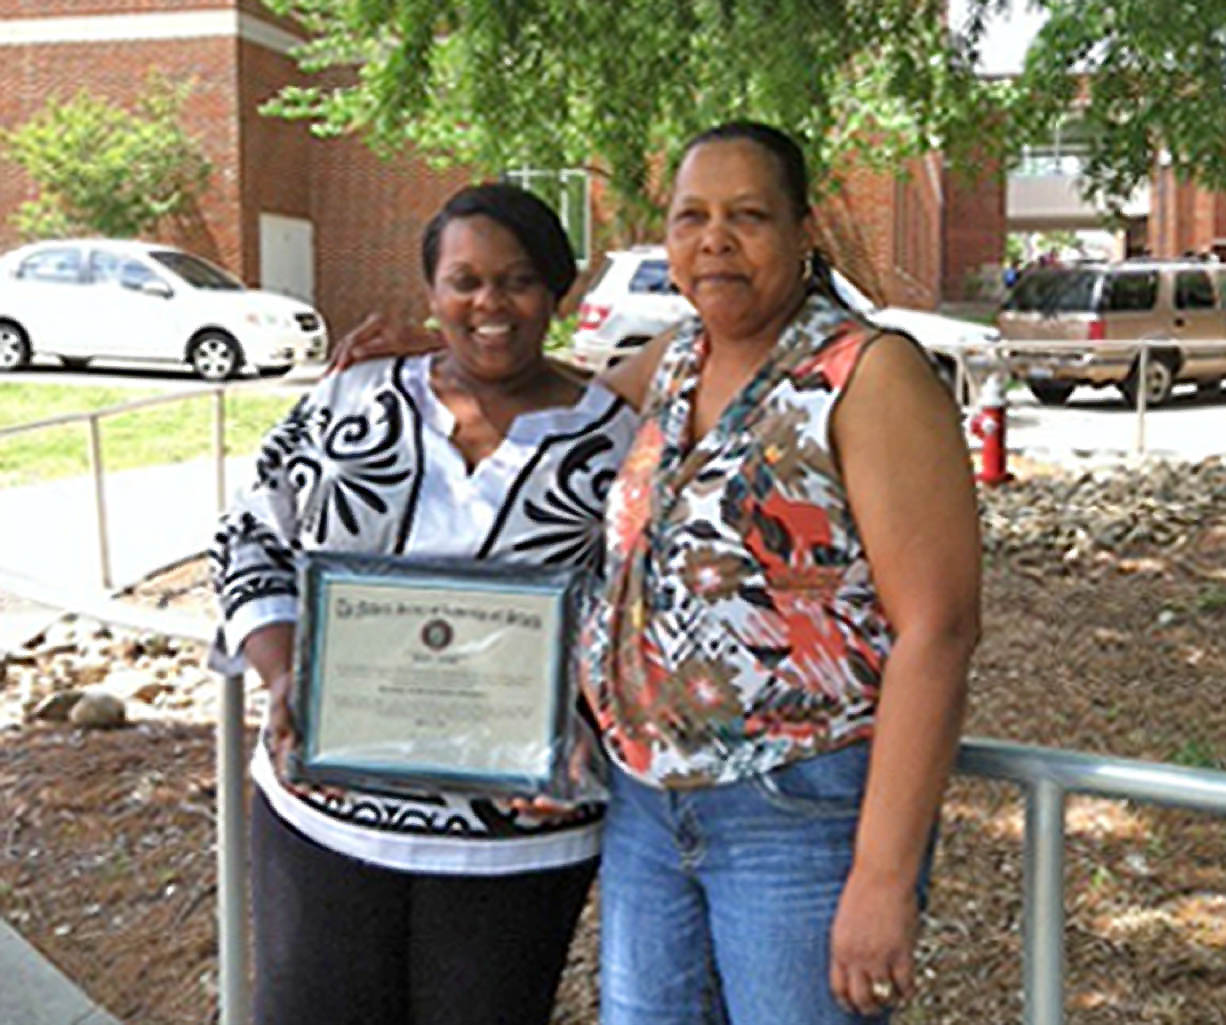 Click to enlarge, Johnita Ellerby (left), of Sanford, holds her membership certificate following her induction into the National Honor Society of Leadership and Success at UNC-Greensboro. With her is her mother, Odessa Ellerby Jackson. Ellerby made a long journey from the darkness of abuse to the light of lifting others. A 2011 graduate of Central Carolina Community College, she is now an honor student at UNCG, earning a degree in Human Services. She plans to earn her doctorate and teach classes on preventing and dealing with child abuse and family violence, as well as lobby for tougher laws against child abusers.